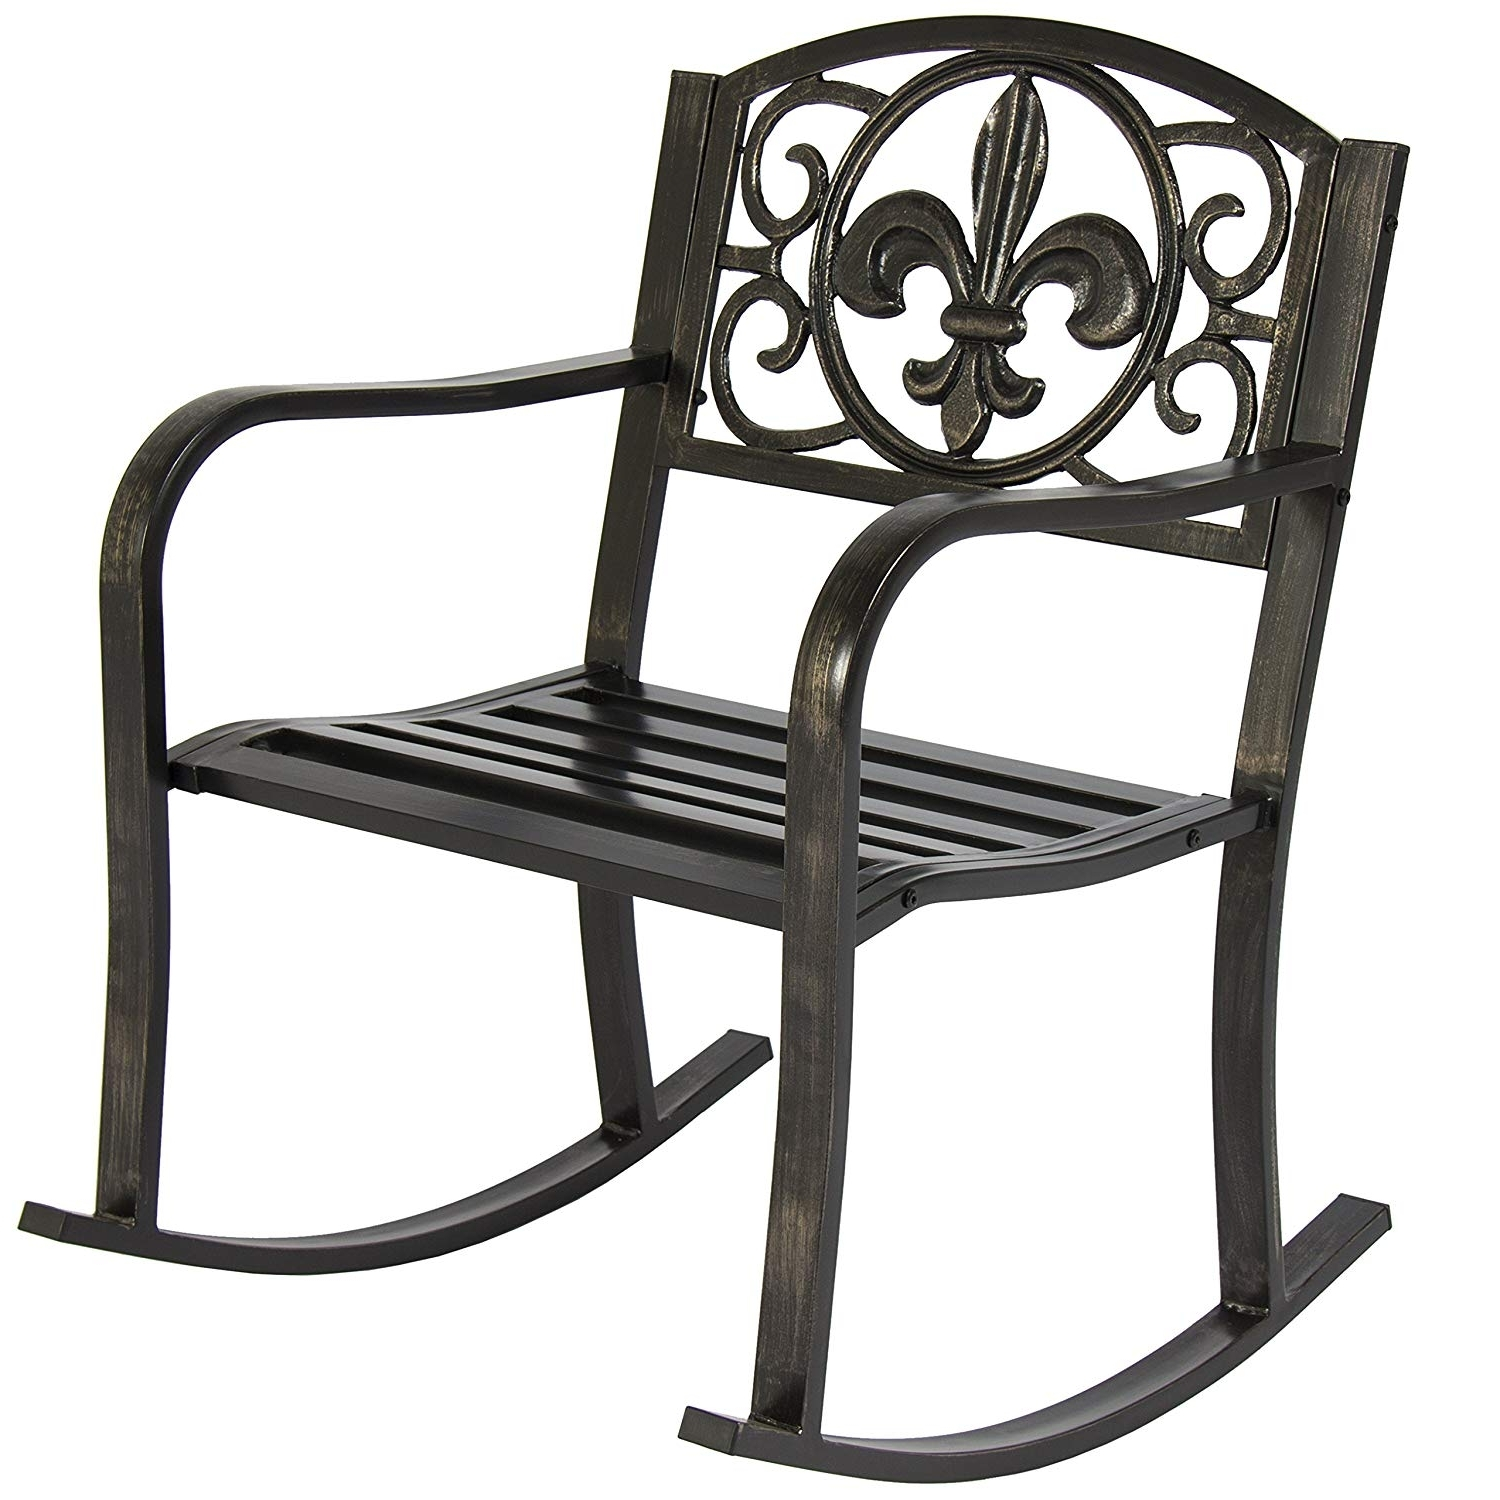 Preferred Amazon : Best Choice Products Metal Rocking Chair Seat For Patio With Regard To Vintage Metal Rocking Patio Chairs (View 8 of 15)